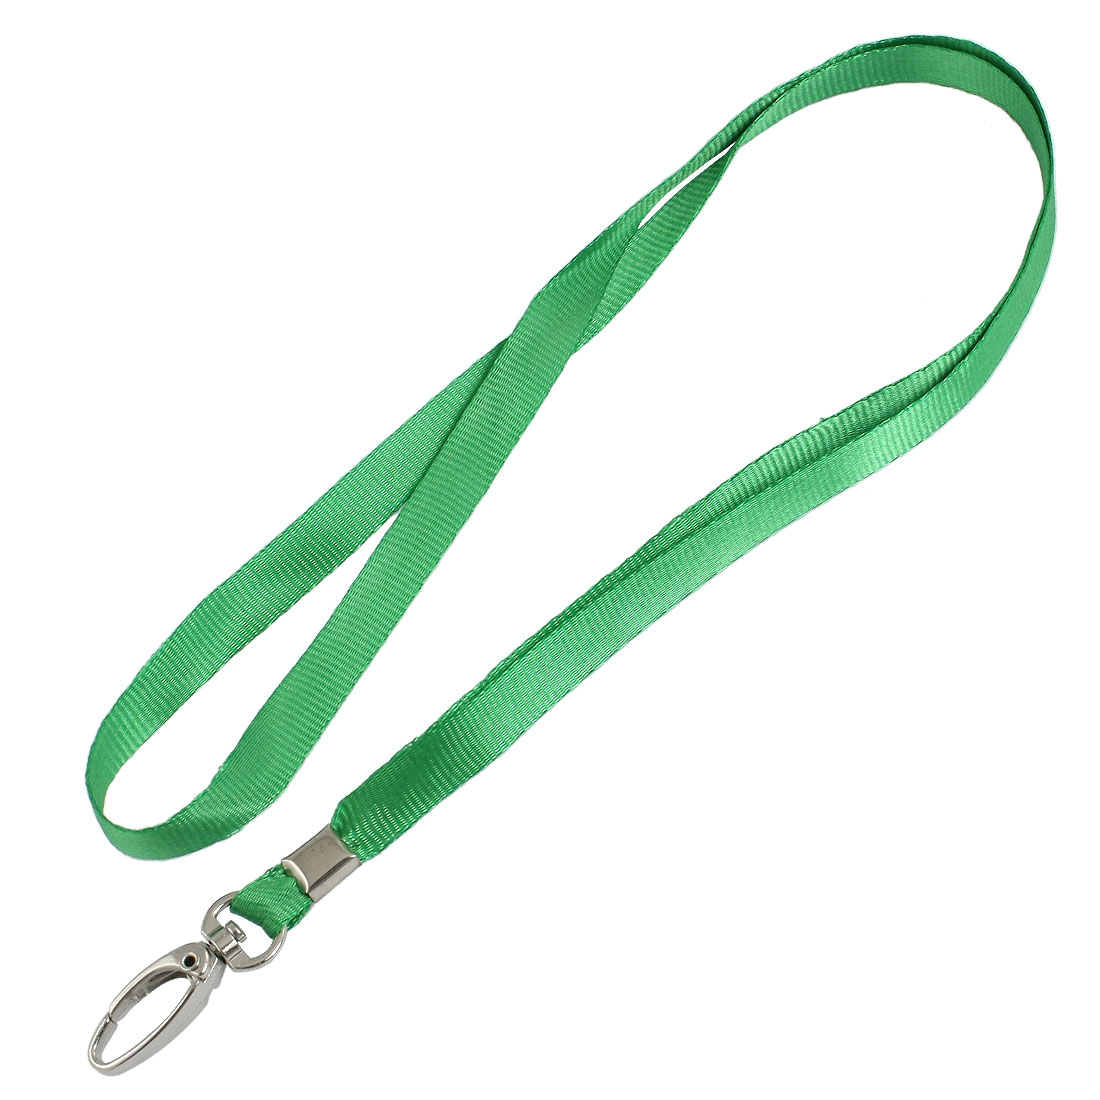 2 Pcs Lobster Clasp Nylon Neck Strap Key Lanyard String Green